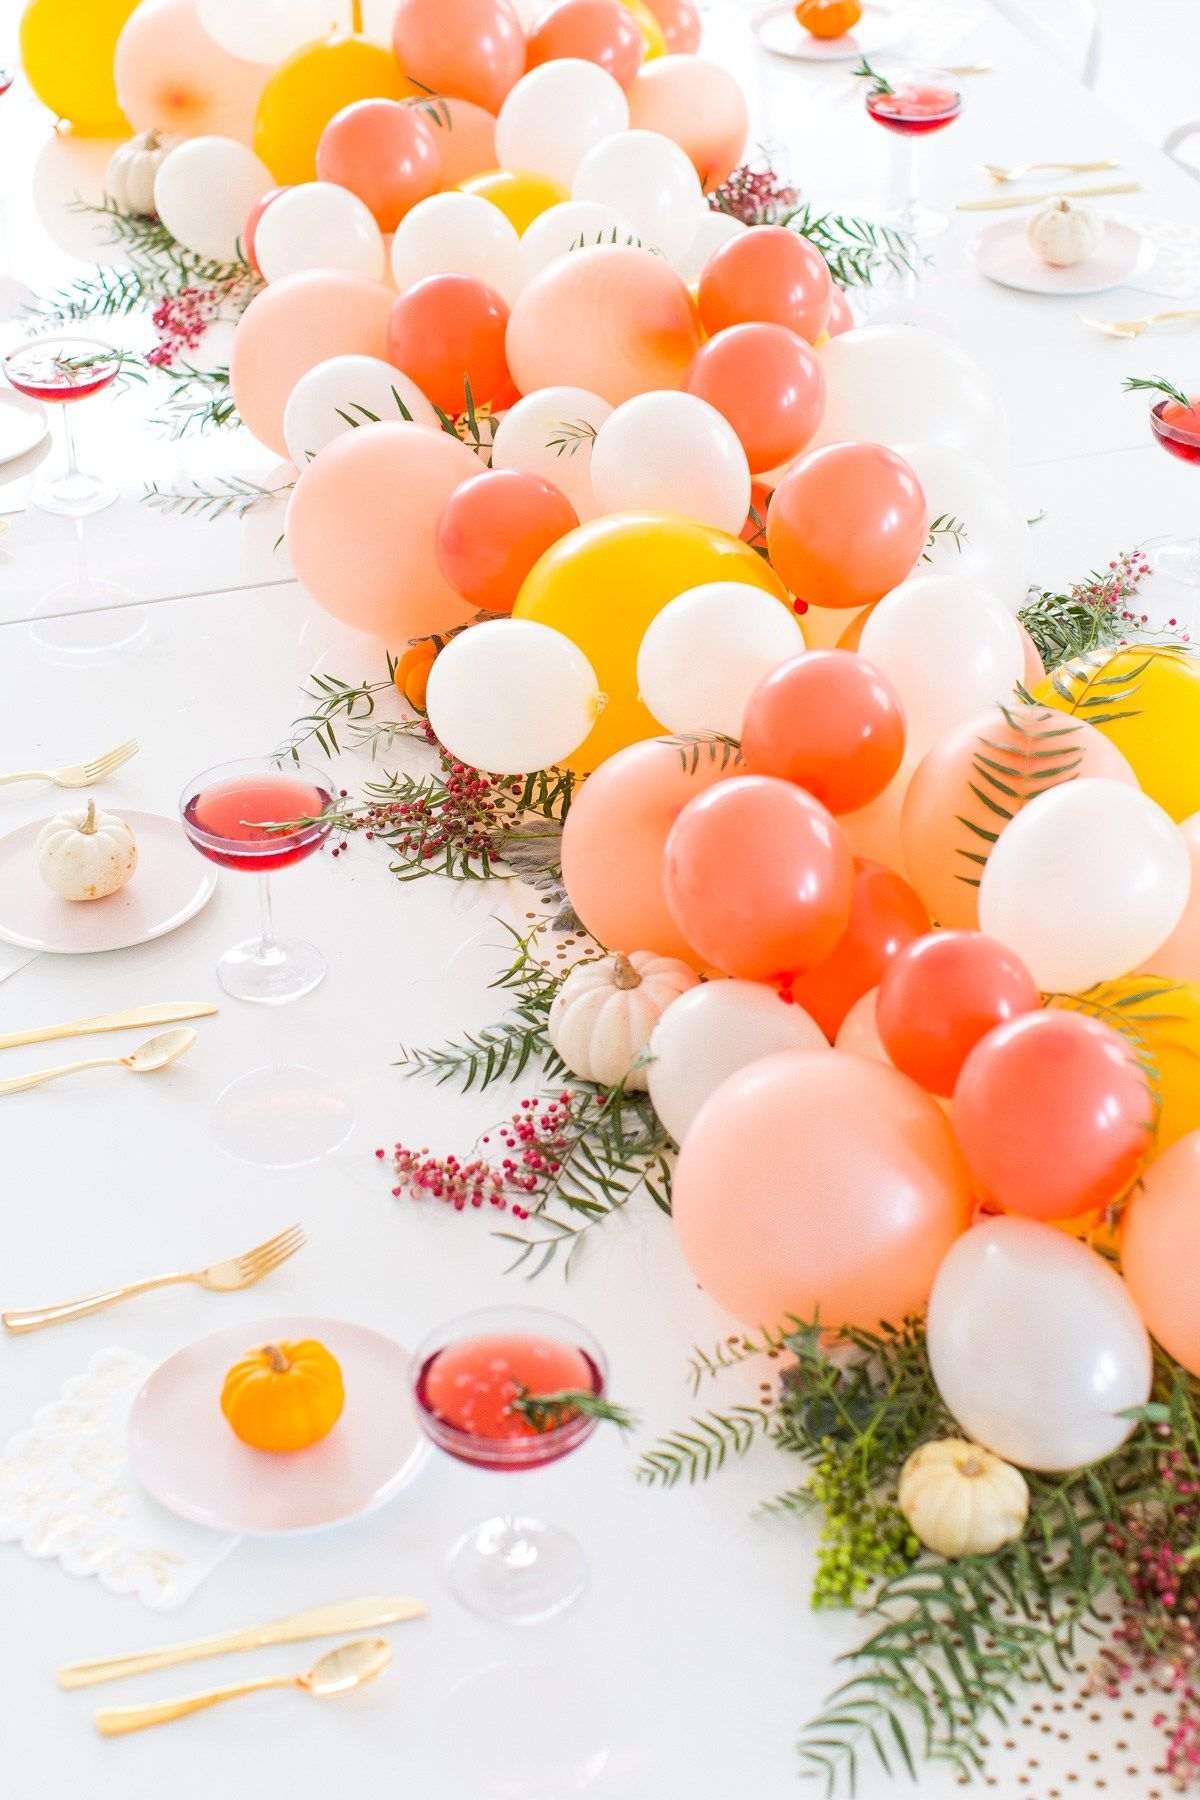 Balloon table runner settings and centerpieces